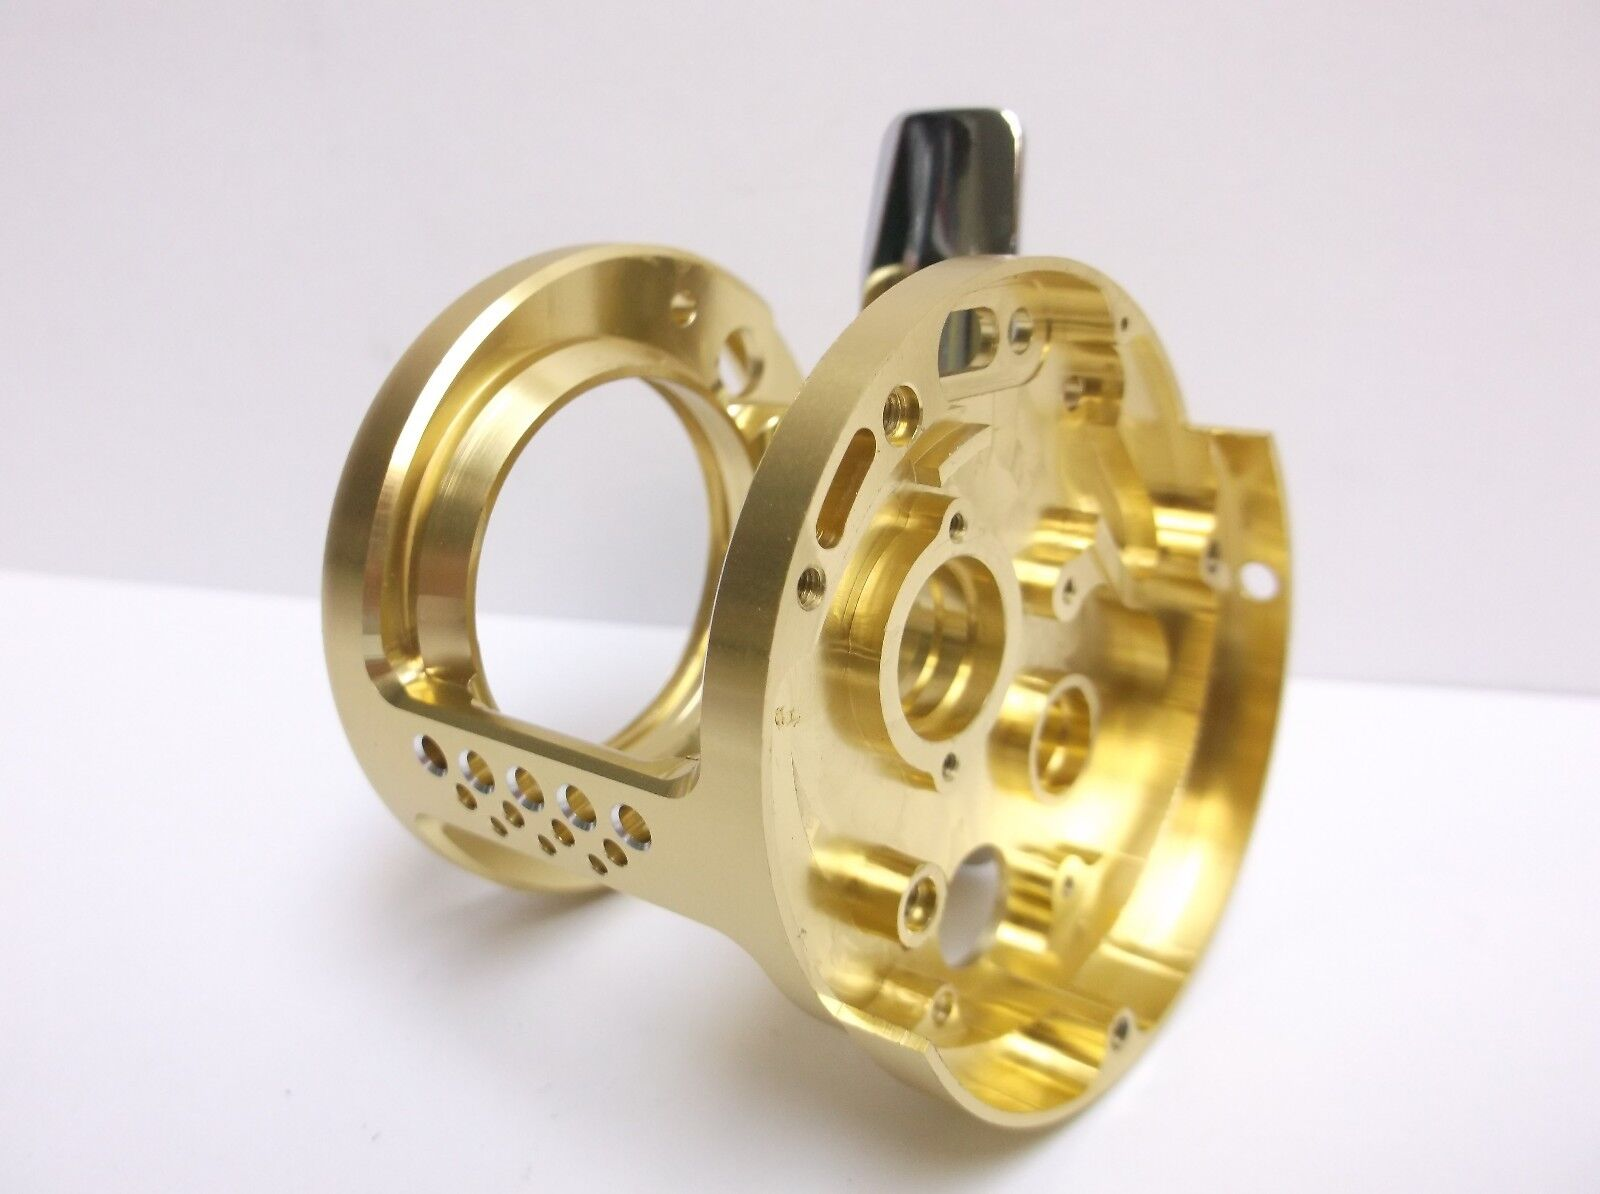 SHIMANO Frame Piece One - 51GT Calcutta BNT2866 - PART REEL